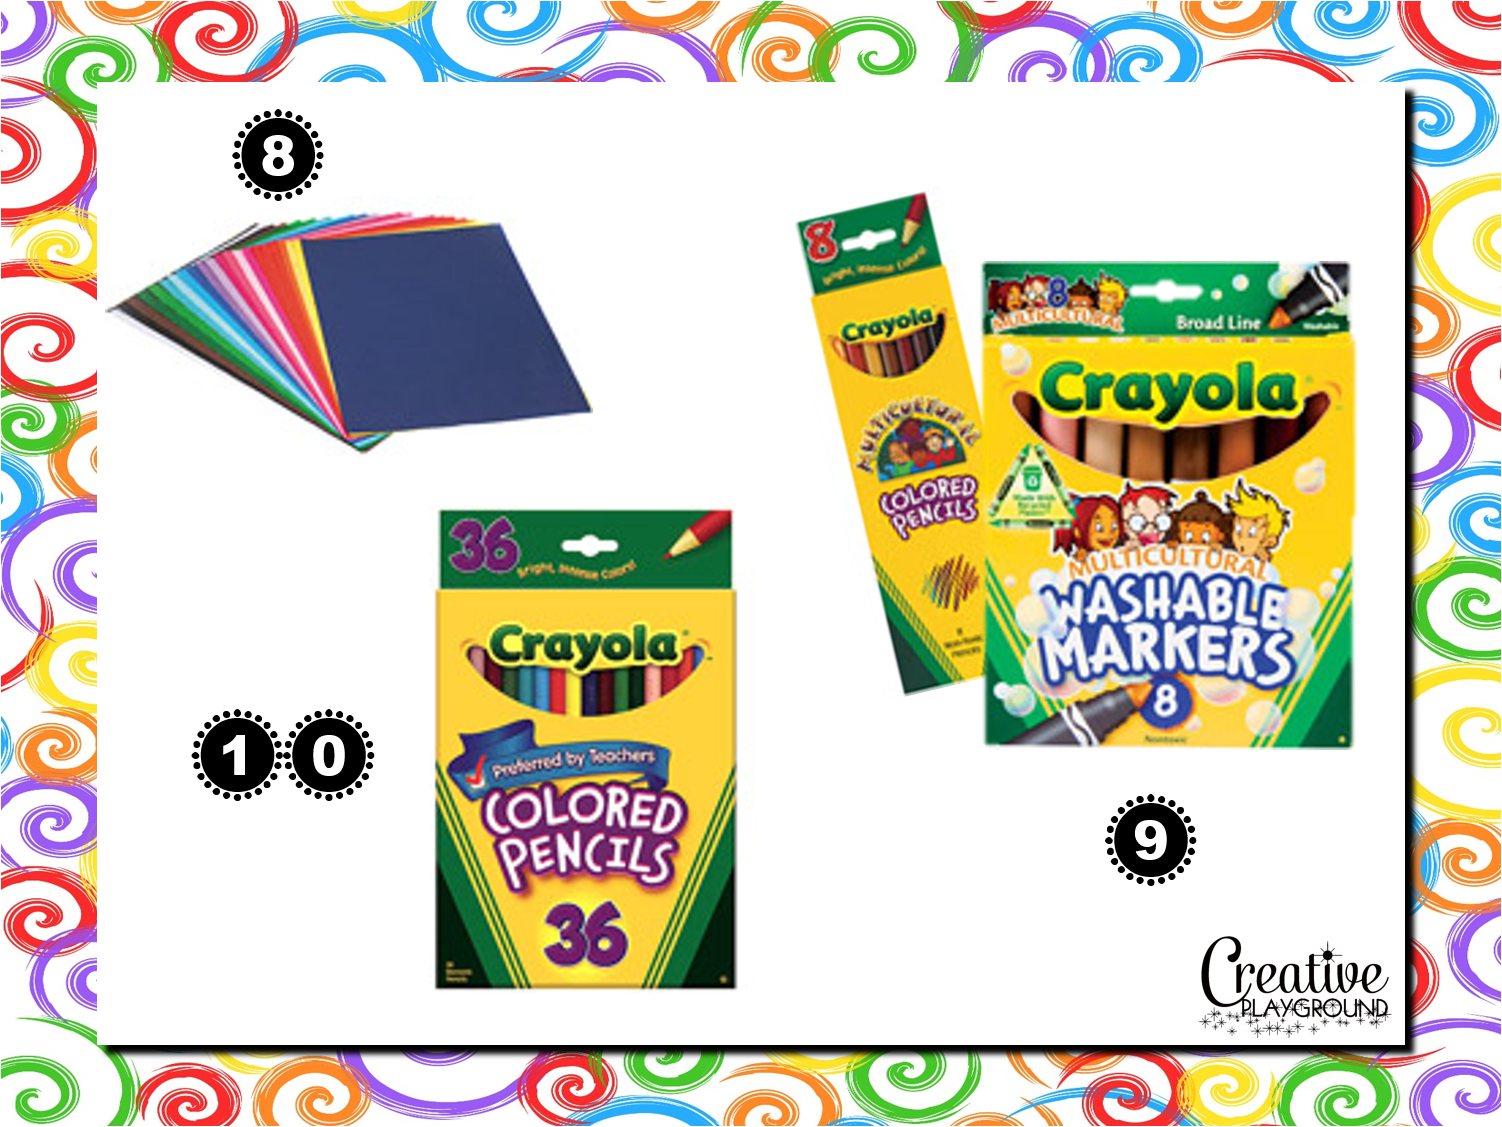 glue crayola math worksheets glue best free printable worksheets. Black Bedroom Furniture Sets. Home Design Ideas